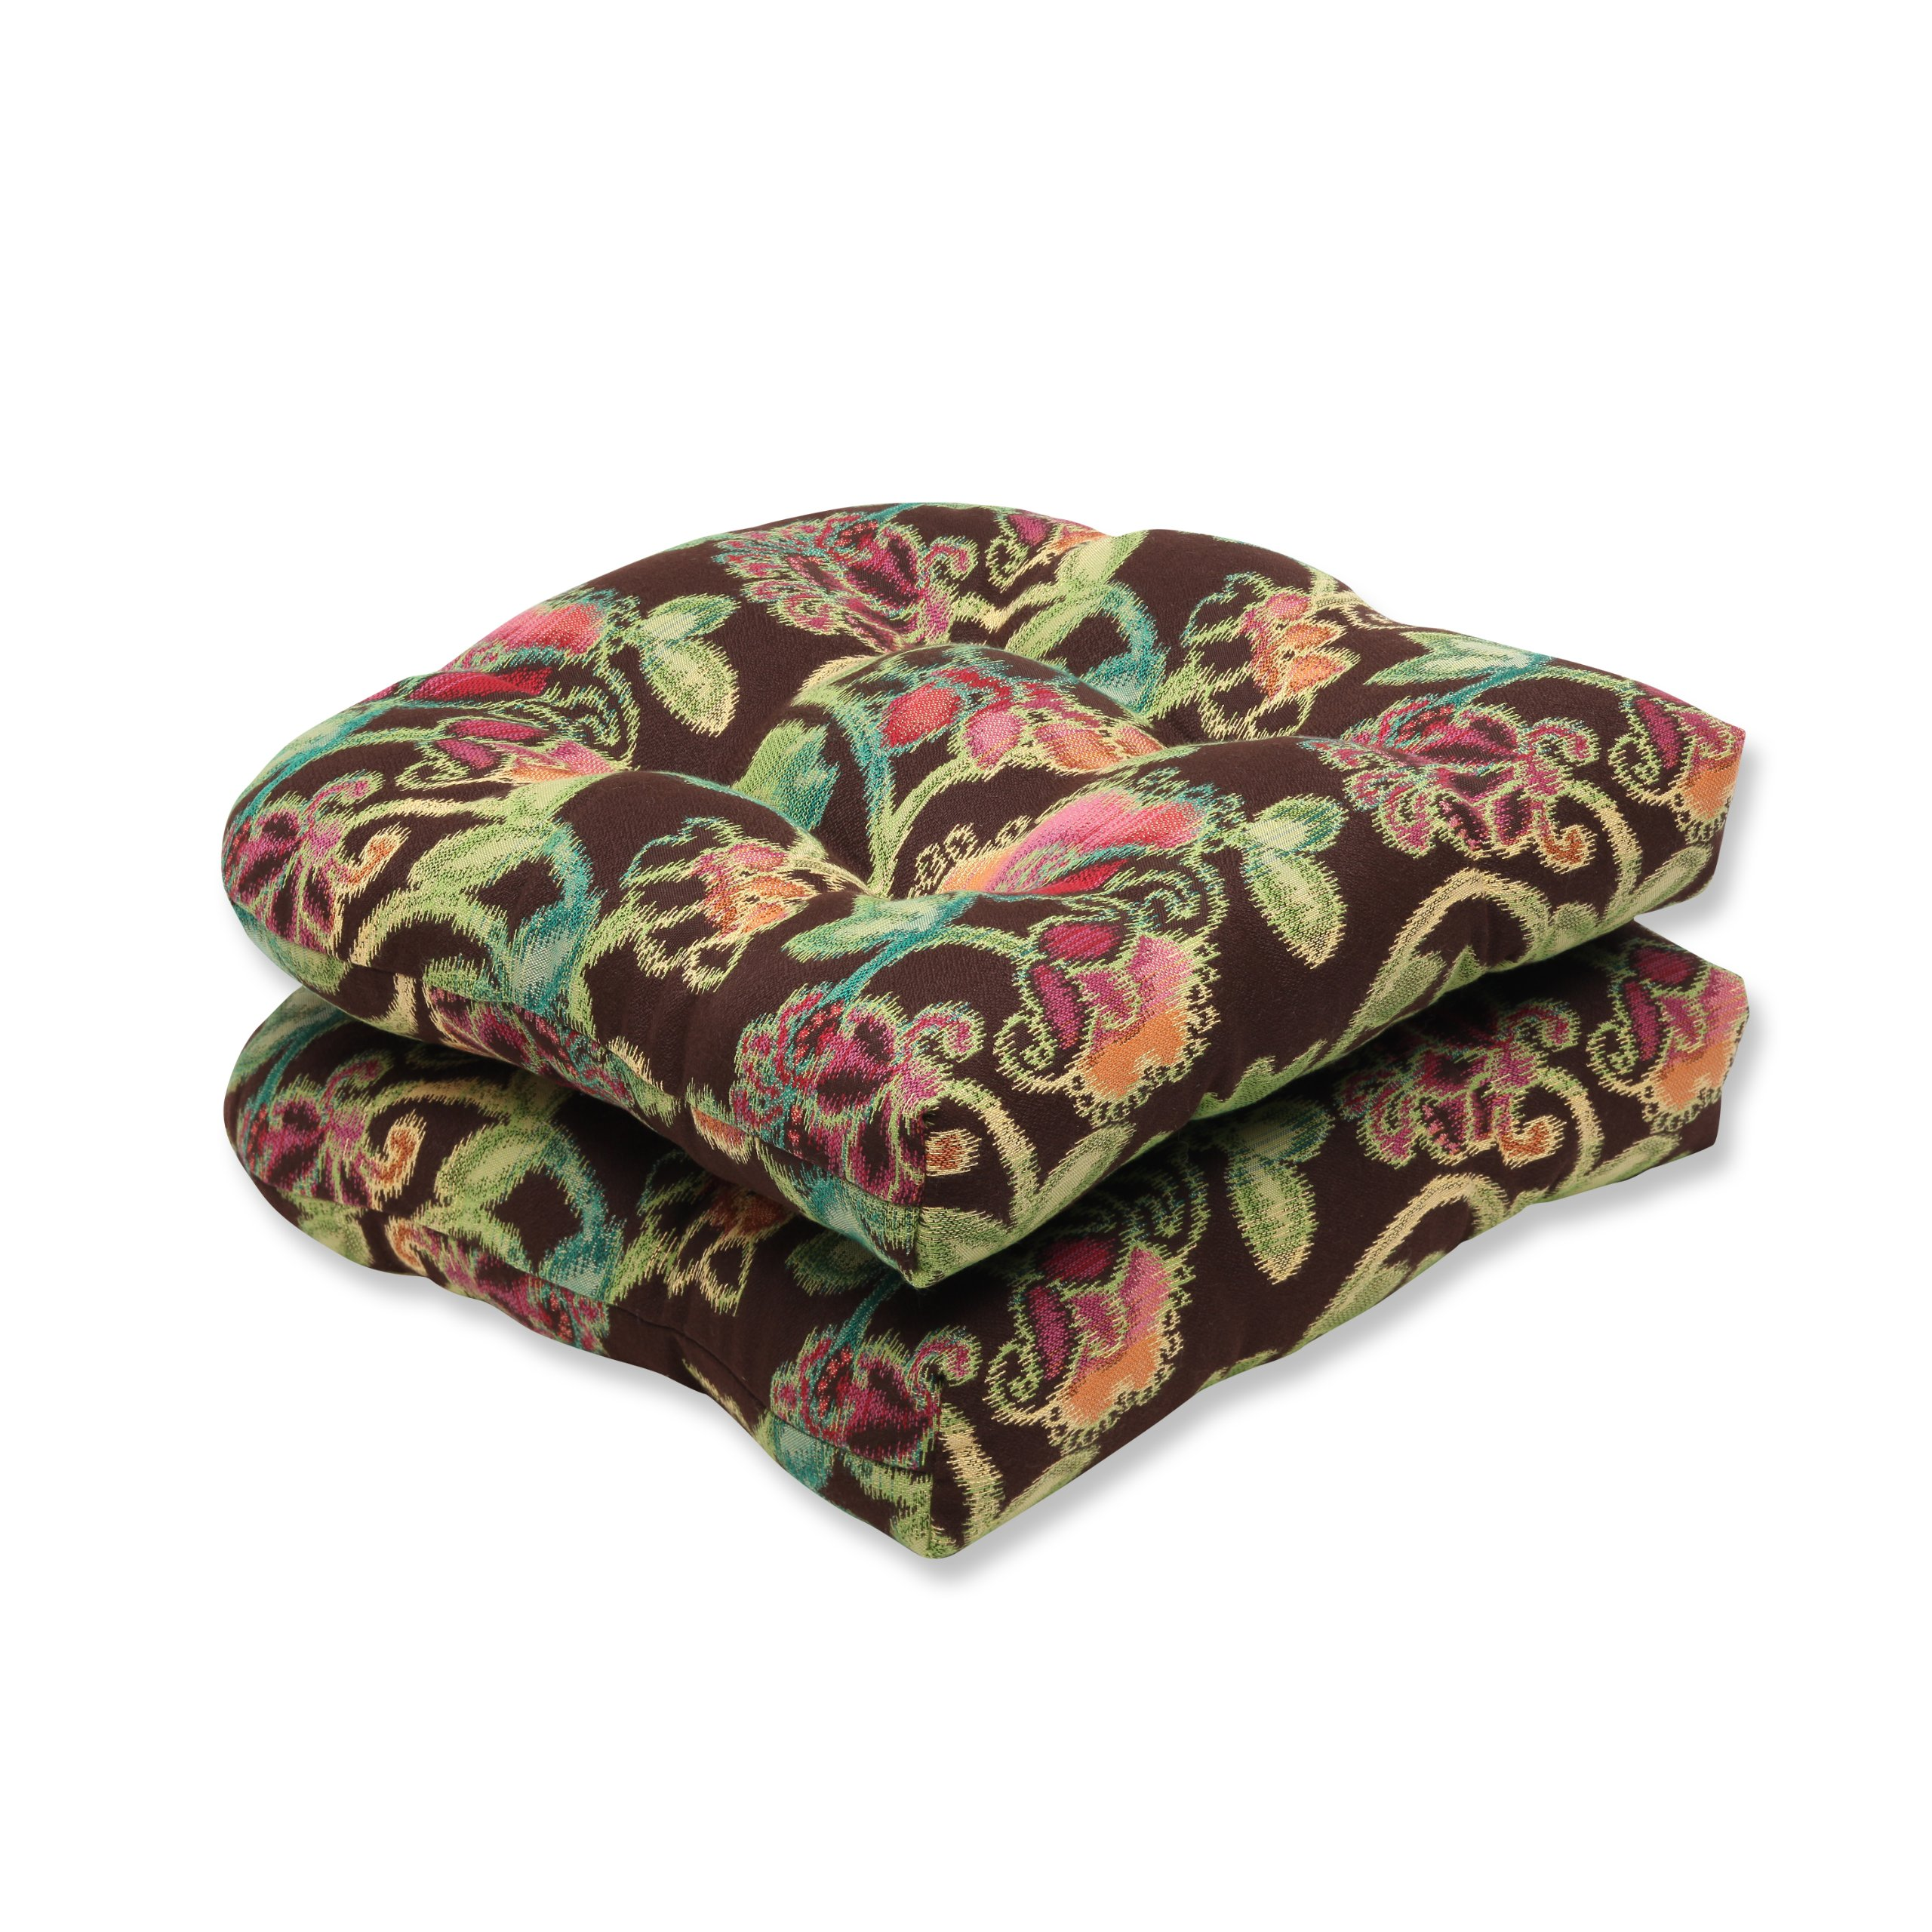 Pillow Perfect Indoor/Outdoor Wicker Seat Cushion (Set of 2) with Sunbrella Vagabond Paradise Fabric, 19 in. L X 19 in. W X 5 in. D